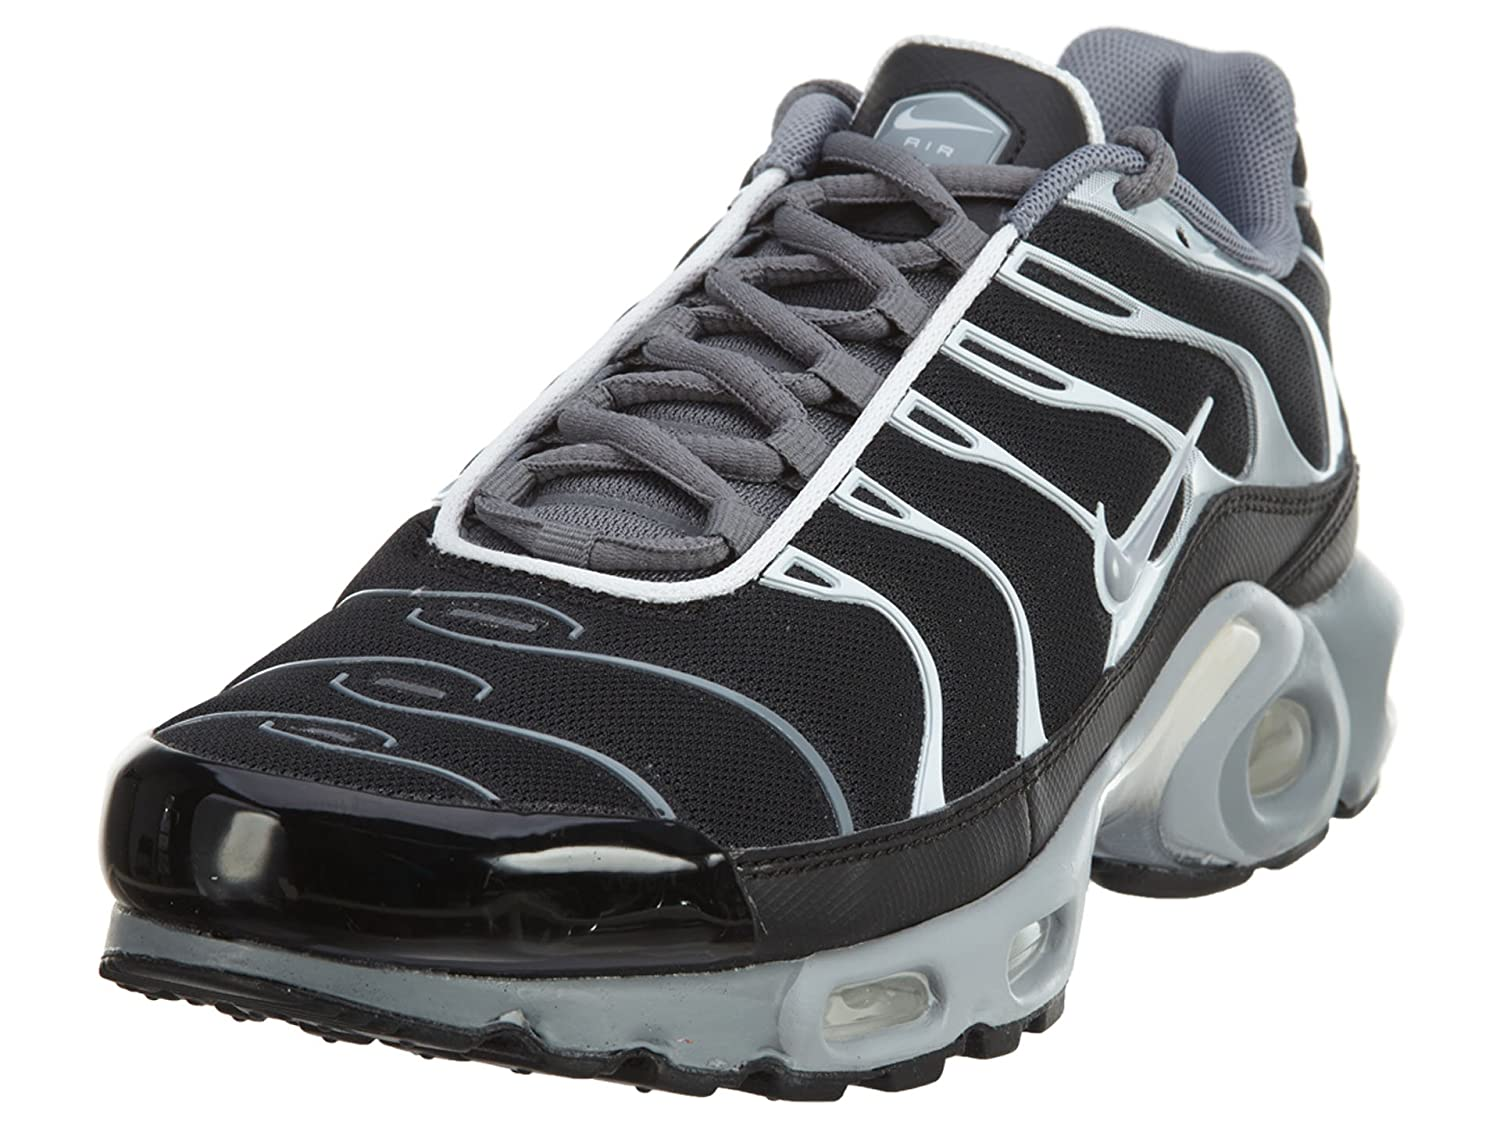 detailed look fb4ba 96742 Amazon.com | NIKE Air Max Plus Mens Style: 852630-010 Size ...